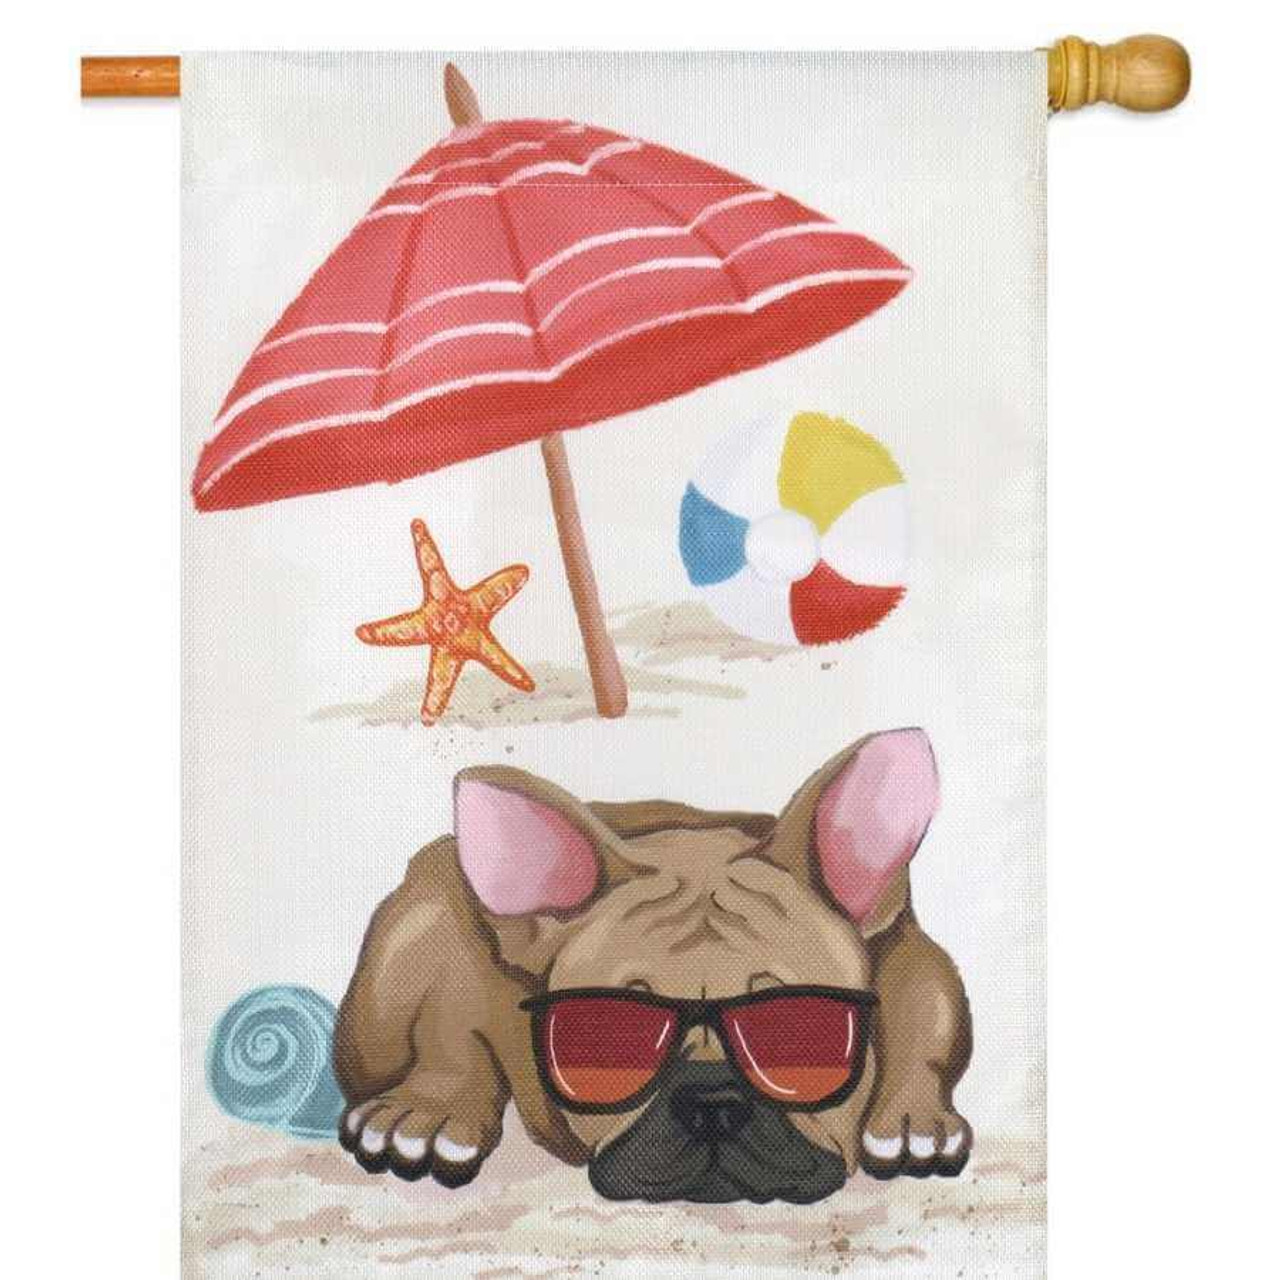 A summer house flag with a brown dog on the bottom portion wearing sunglasses. Behind the dog there is a red umbrella, a starfish, and a beach ball. The background is sand.